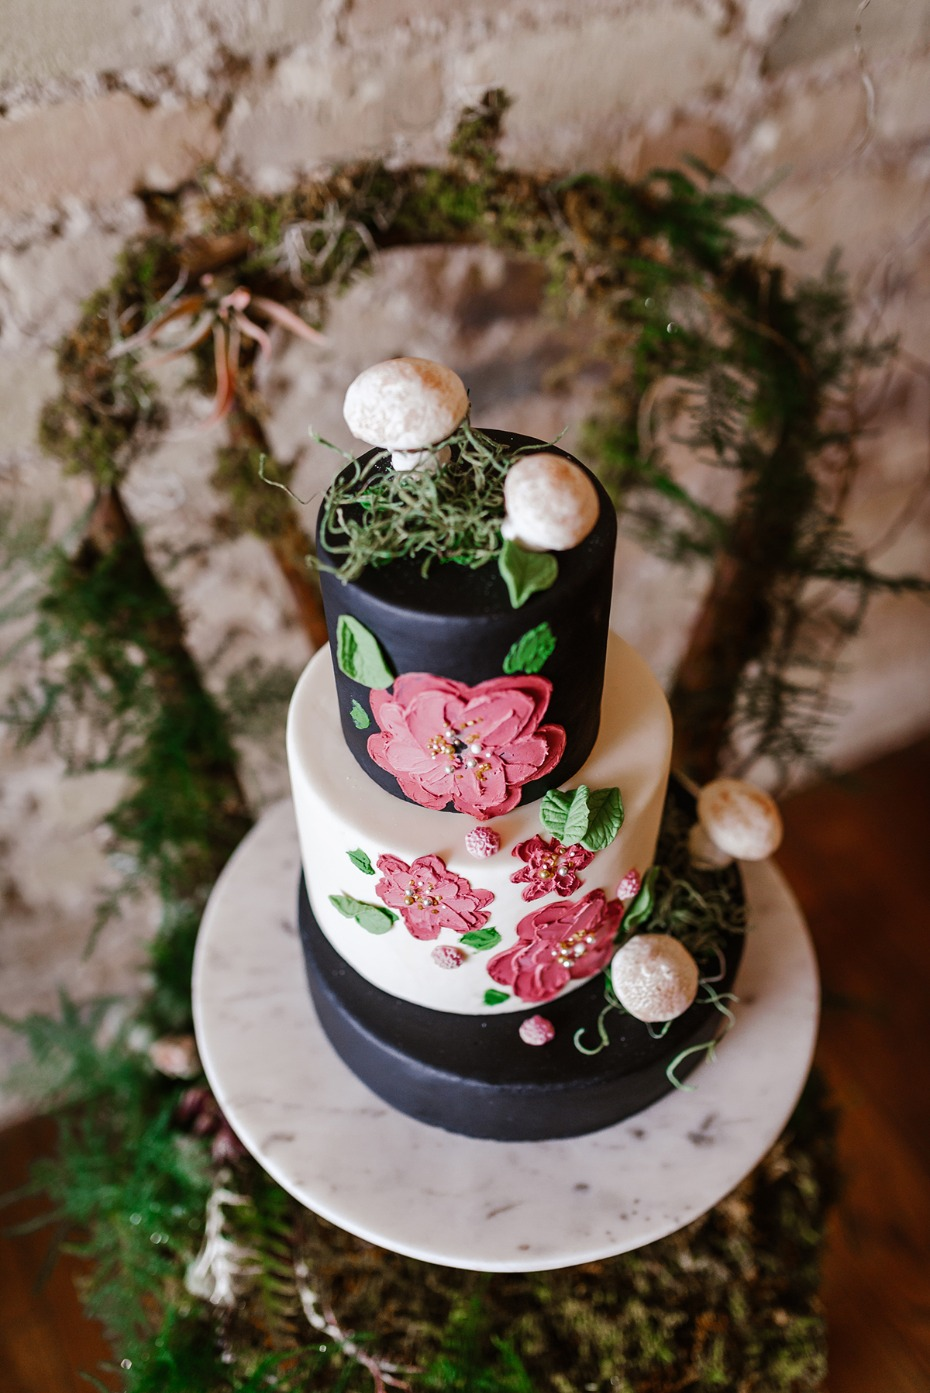 whimsical wedding cake idea